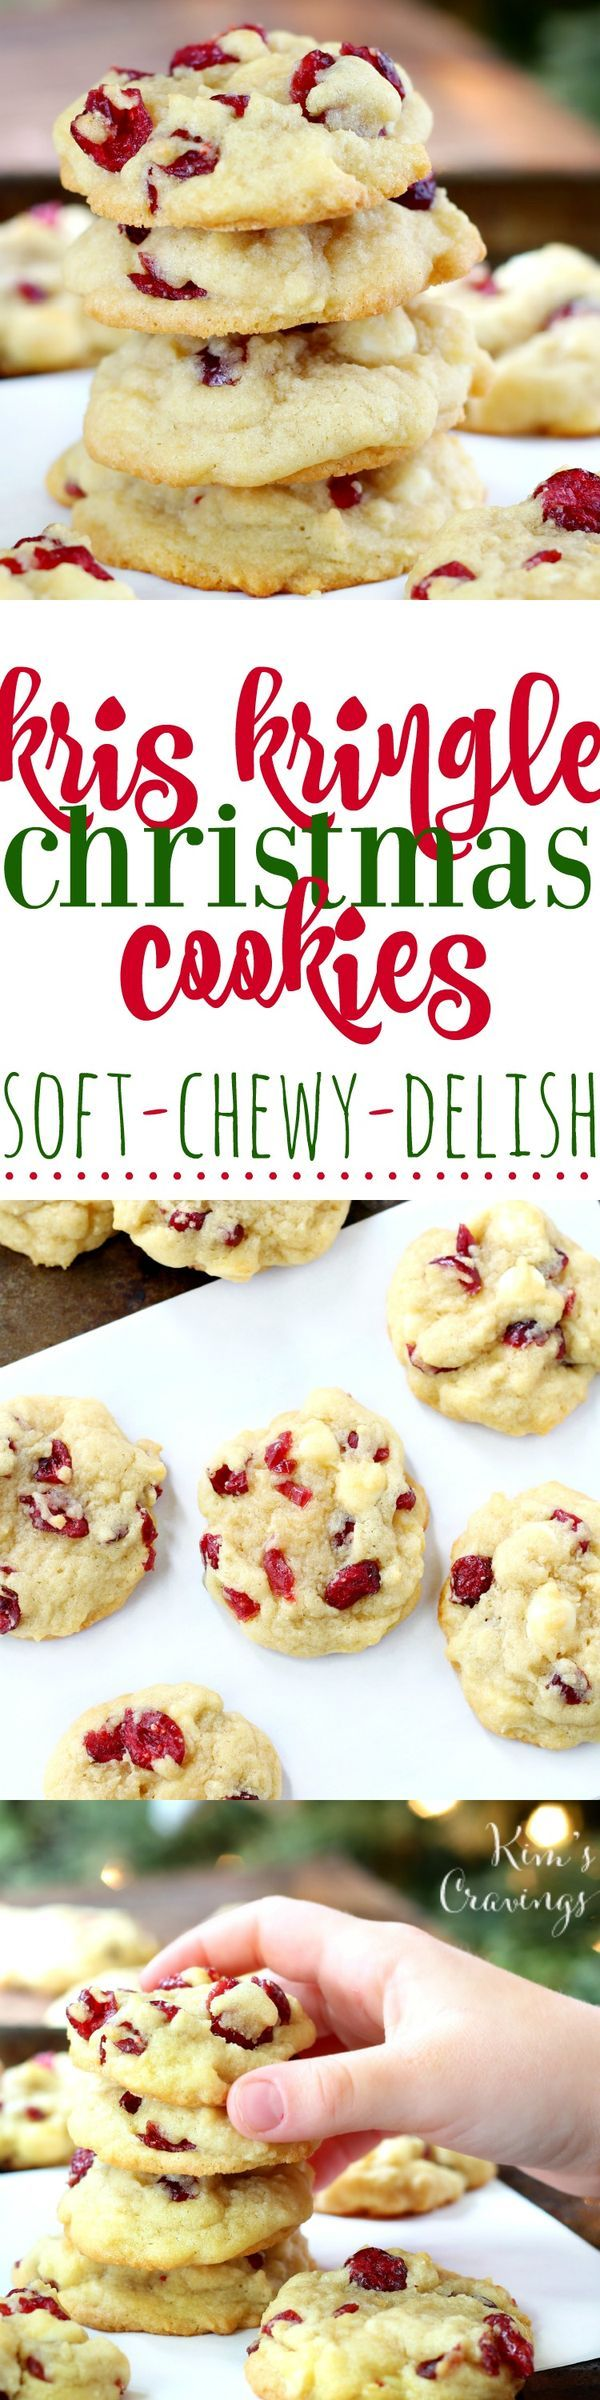 I'd love to make a gluten free version of these rich and buttery Kris Kringle Christmas Cookies, dressed for the holidays with creamy white chocolate chips and sweet dried red cranberries. Yum! #ginger